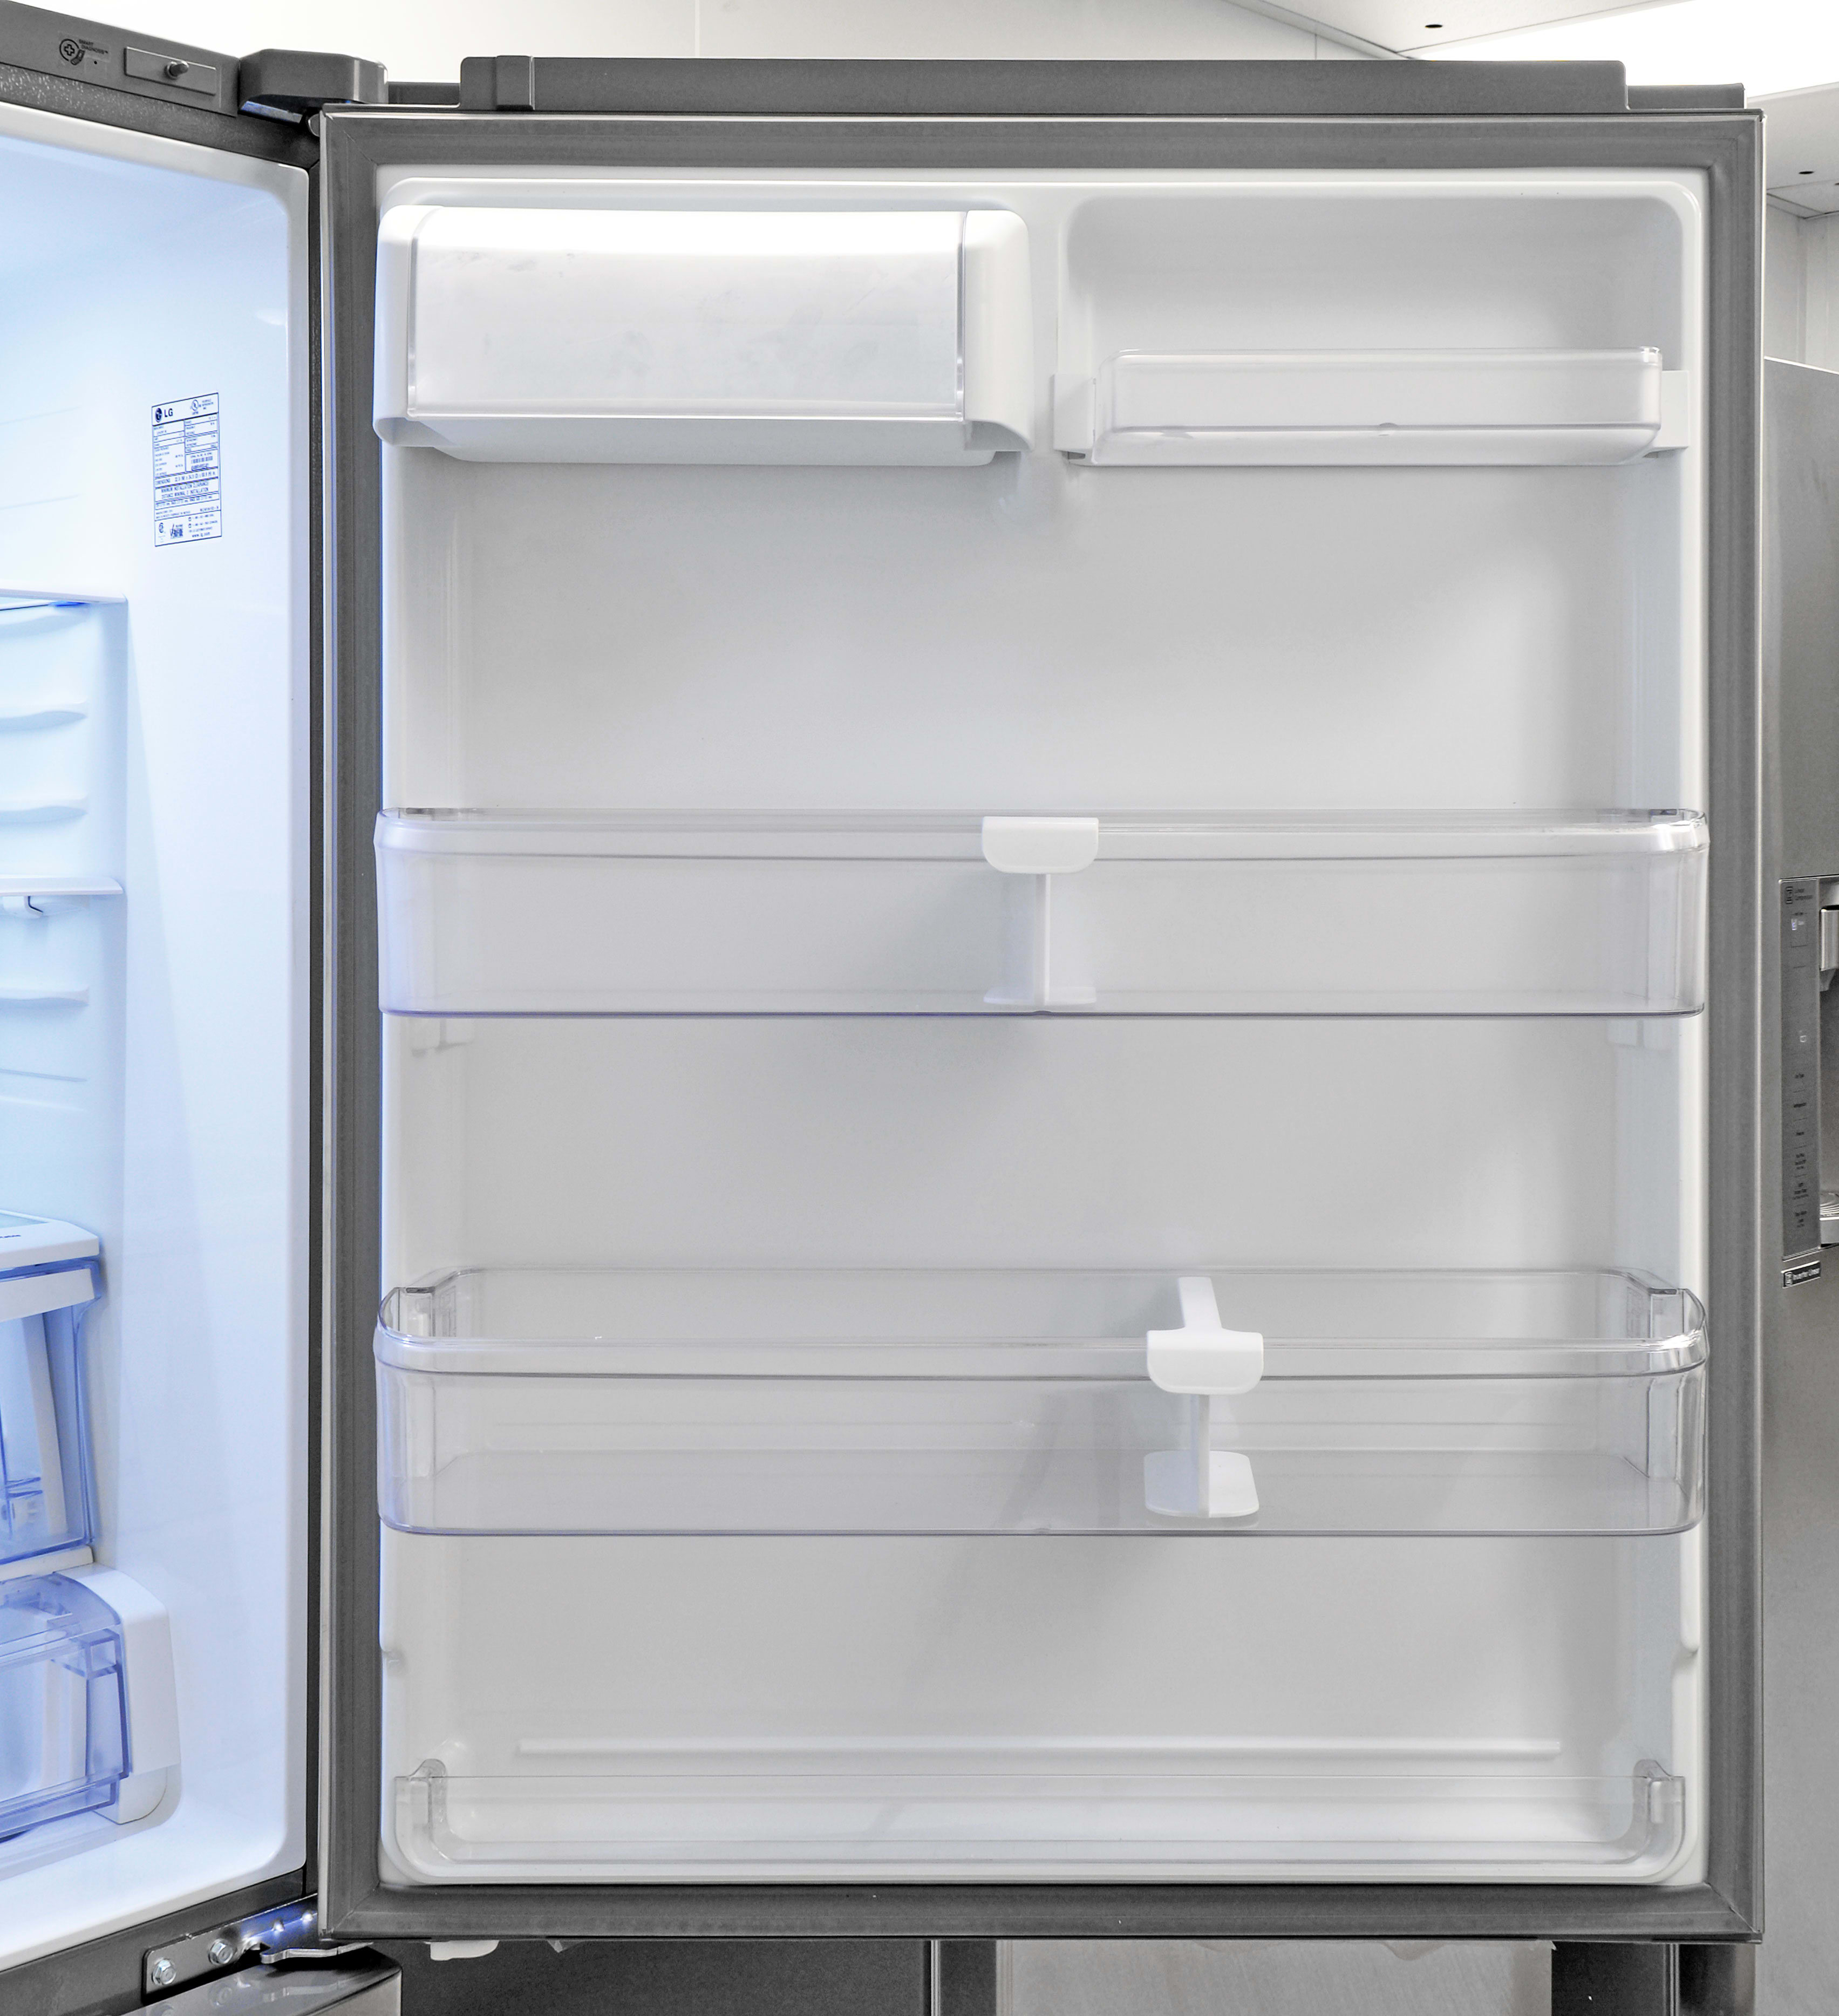 Plenty of space on the LG LDC24370ST's door is great for organizing frequently-used items that you want to keep handy.